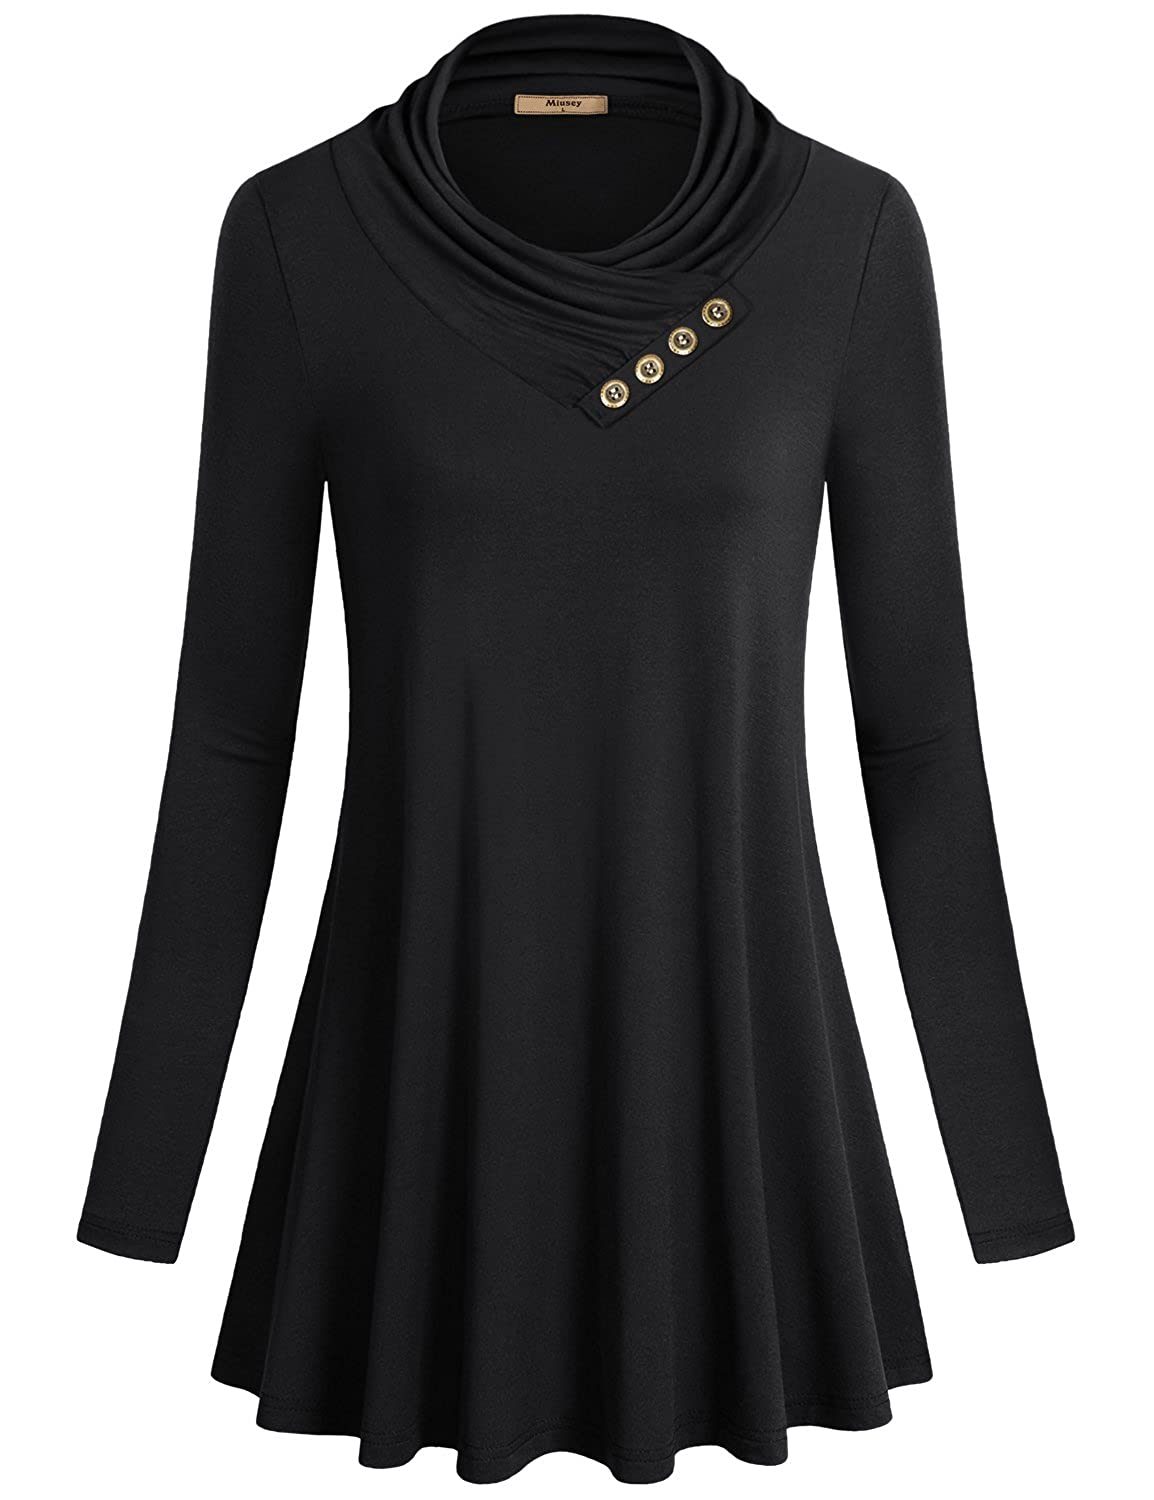 e135cb053e0 Miusey Women s Long Sleeve Cowl Neck Form Fitting Casual Tunic Top Blouse  at Amazon Women s Clothing store